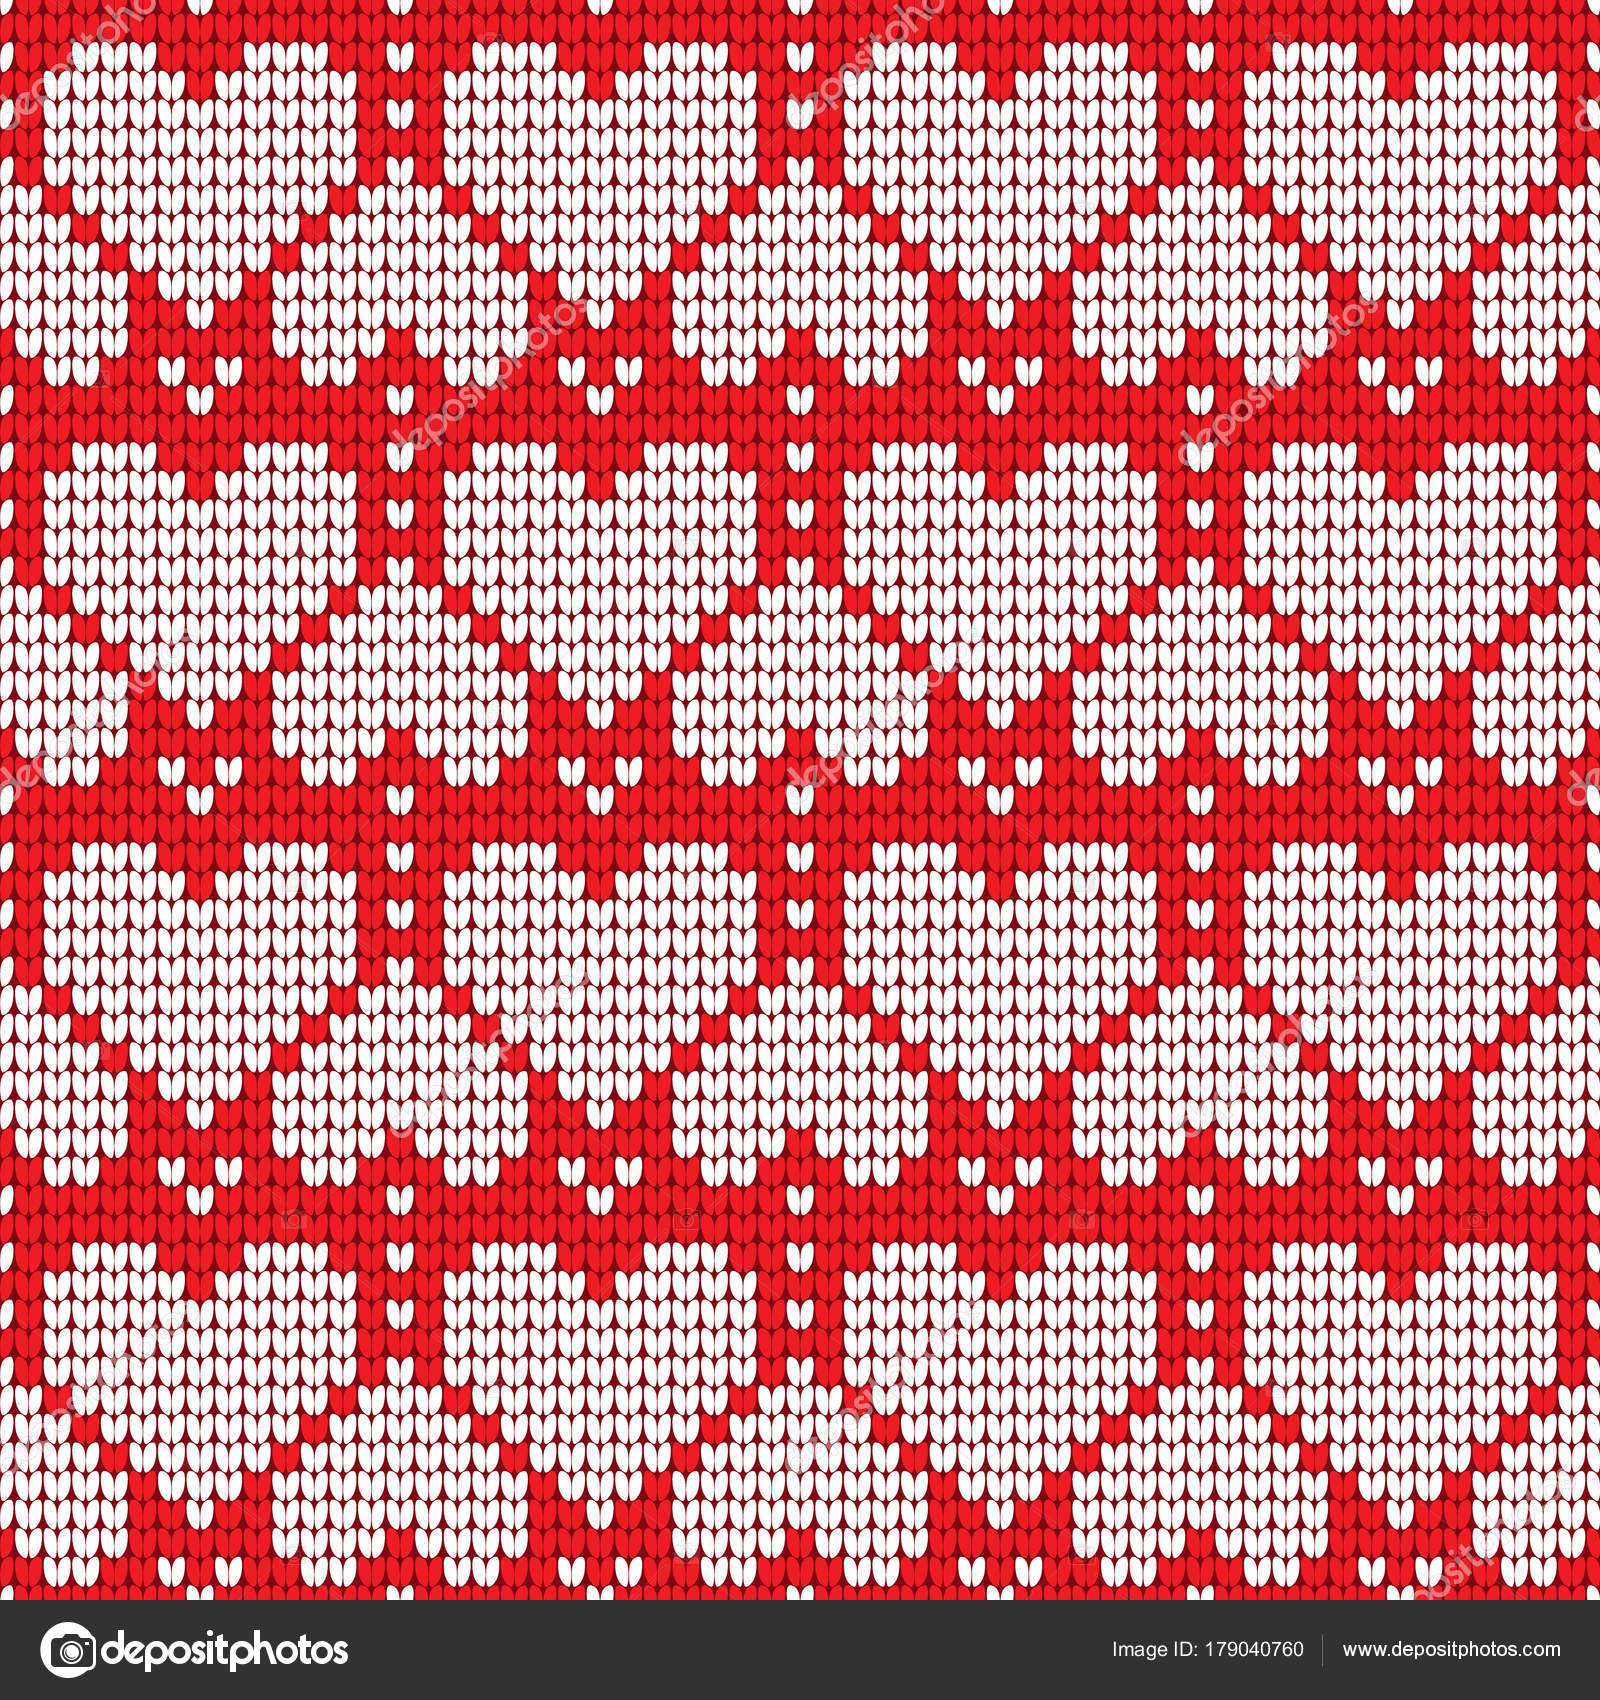 Valentines Day love heart knitted seamless pattern. Textures in red ...